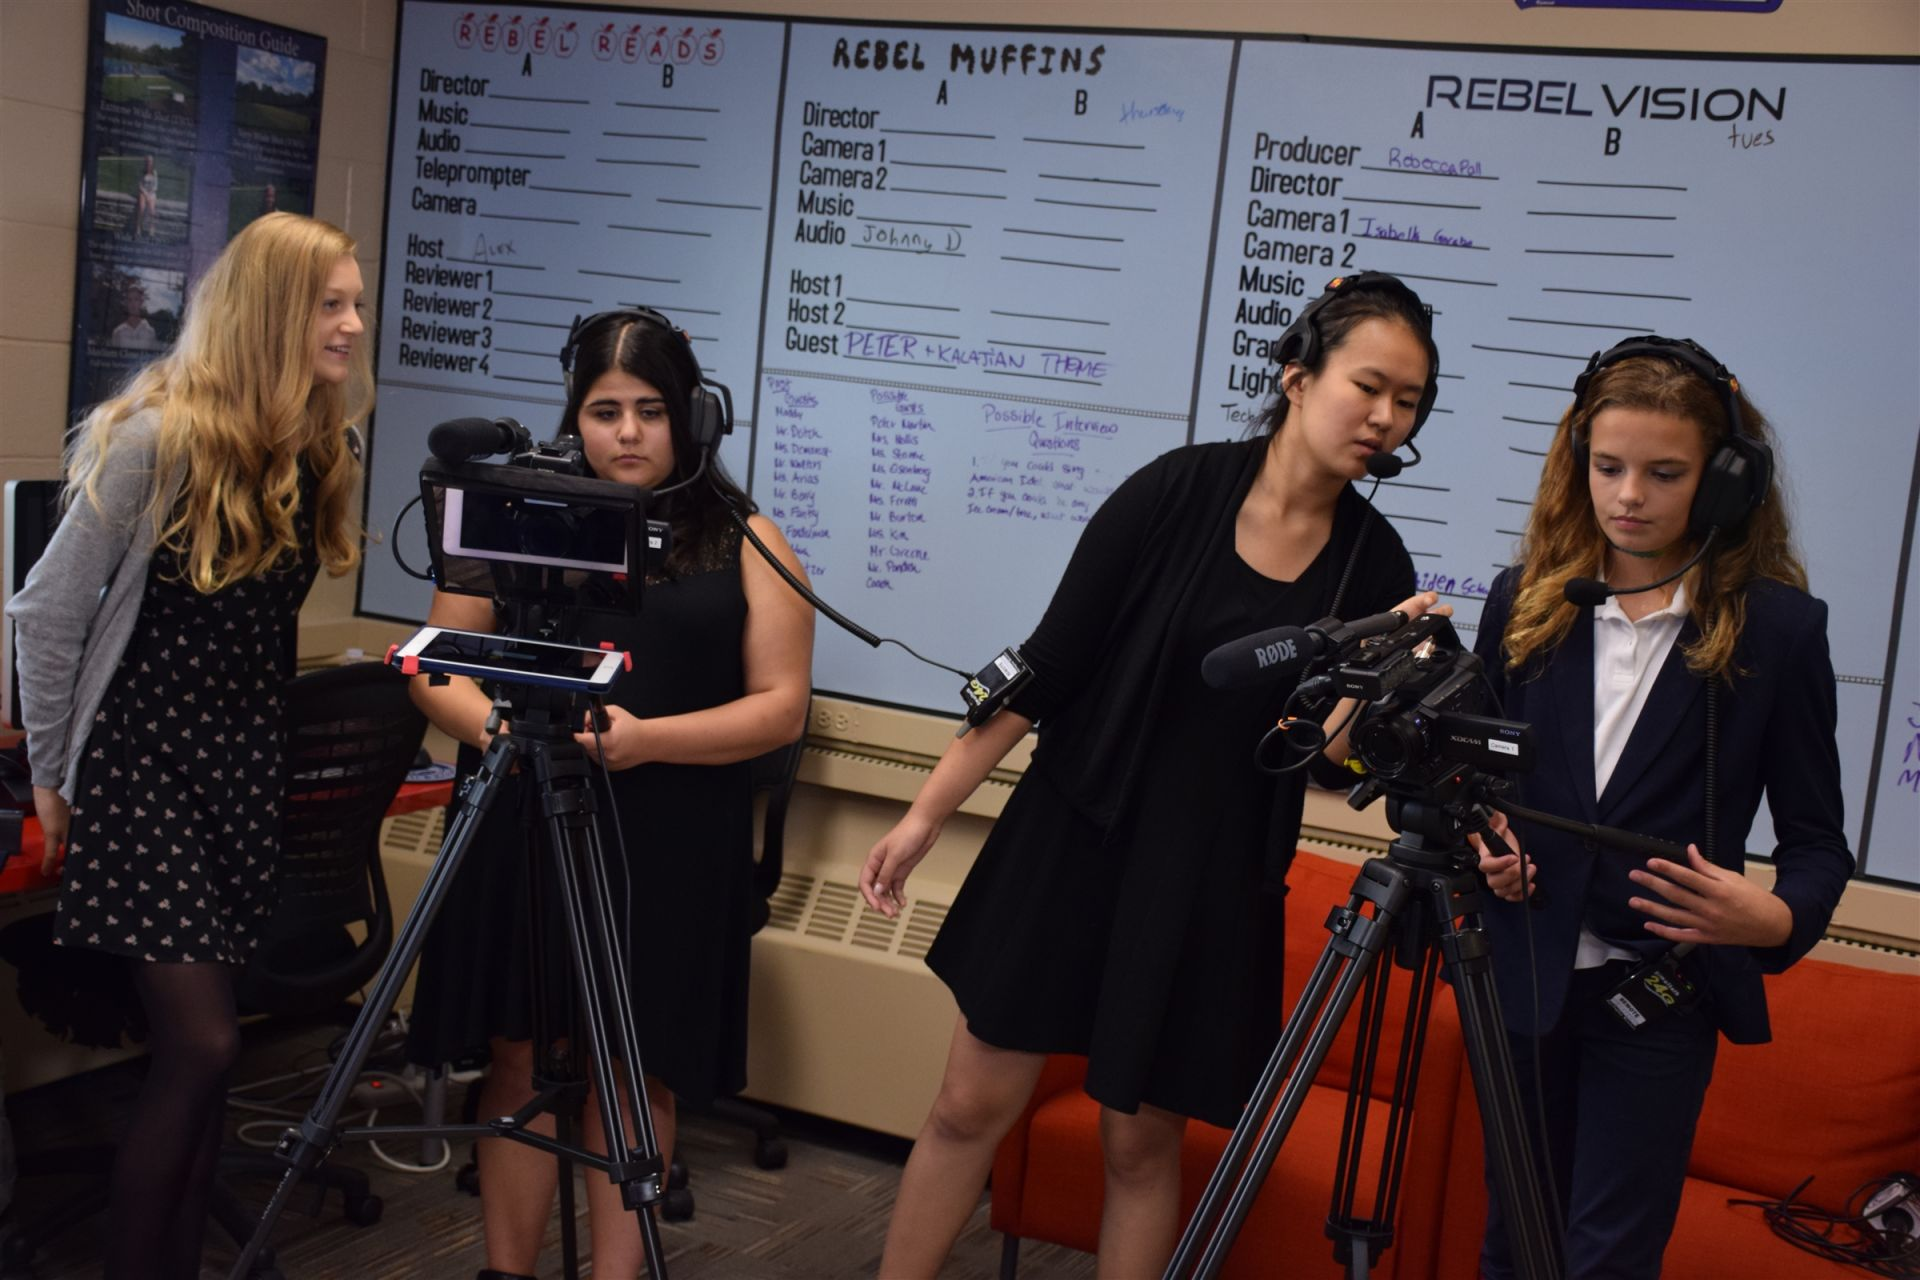 Upper and Middle School students work together in the RebelVision Studio, a fully equipped television production studio